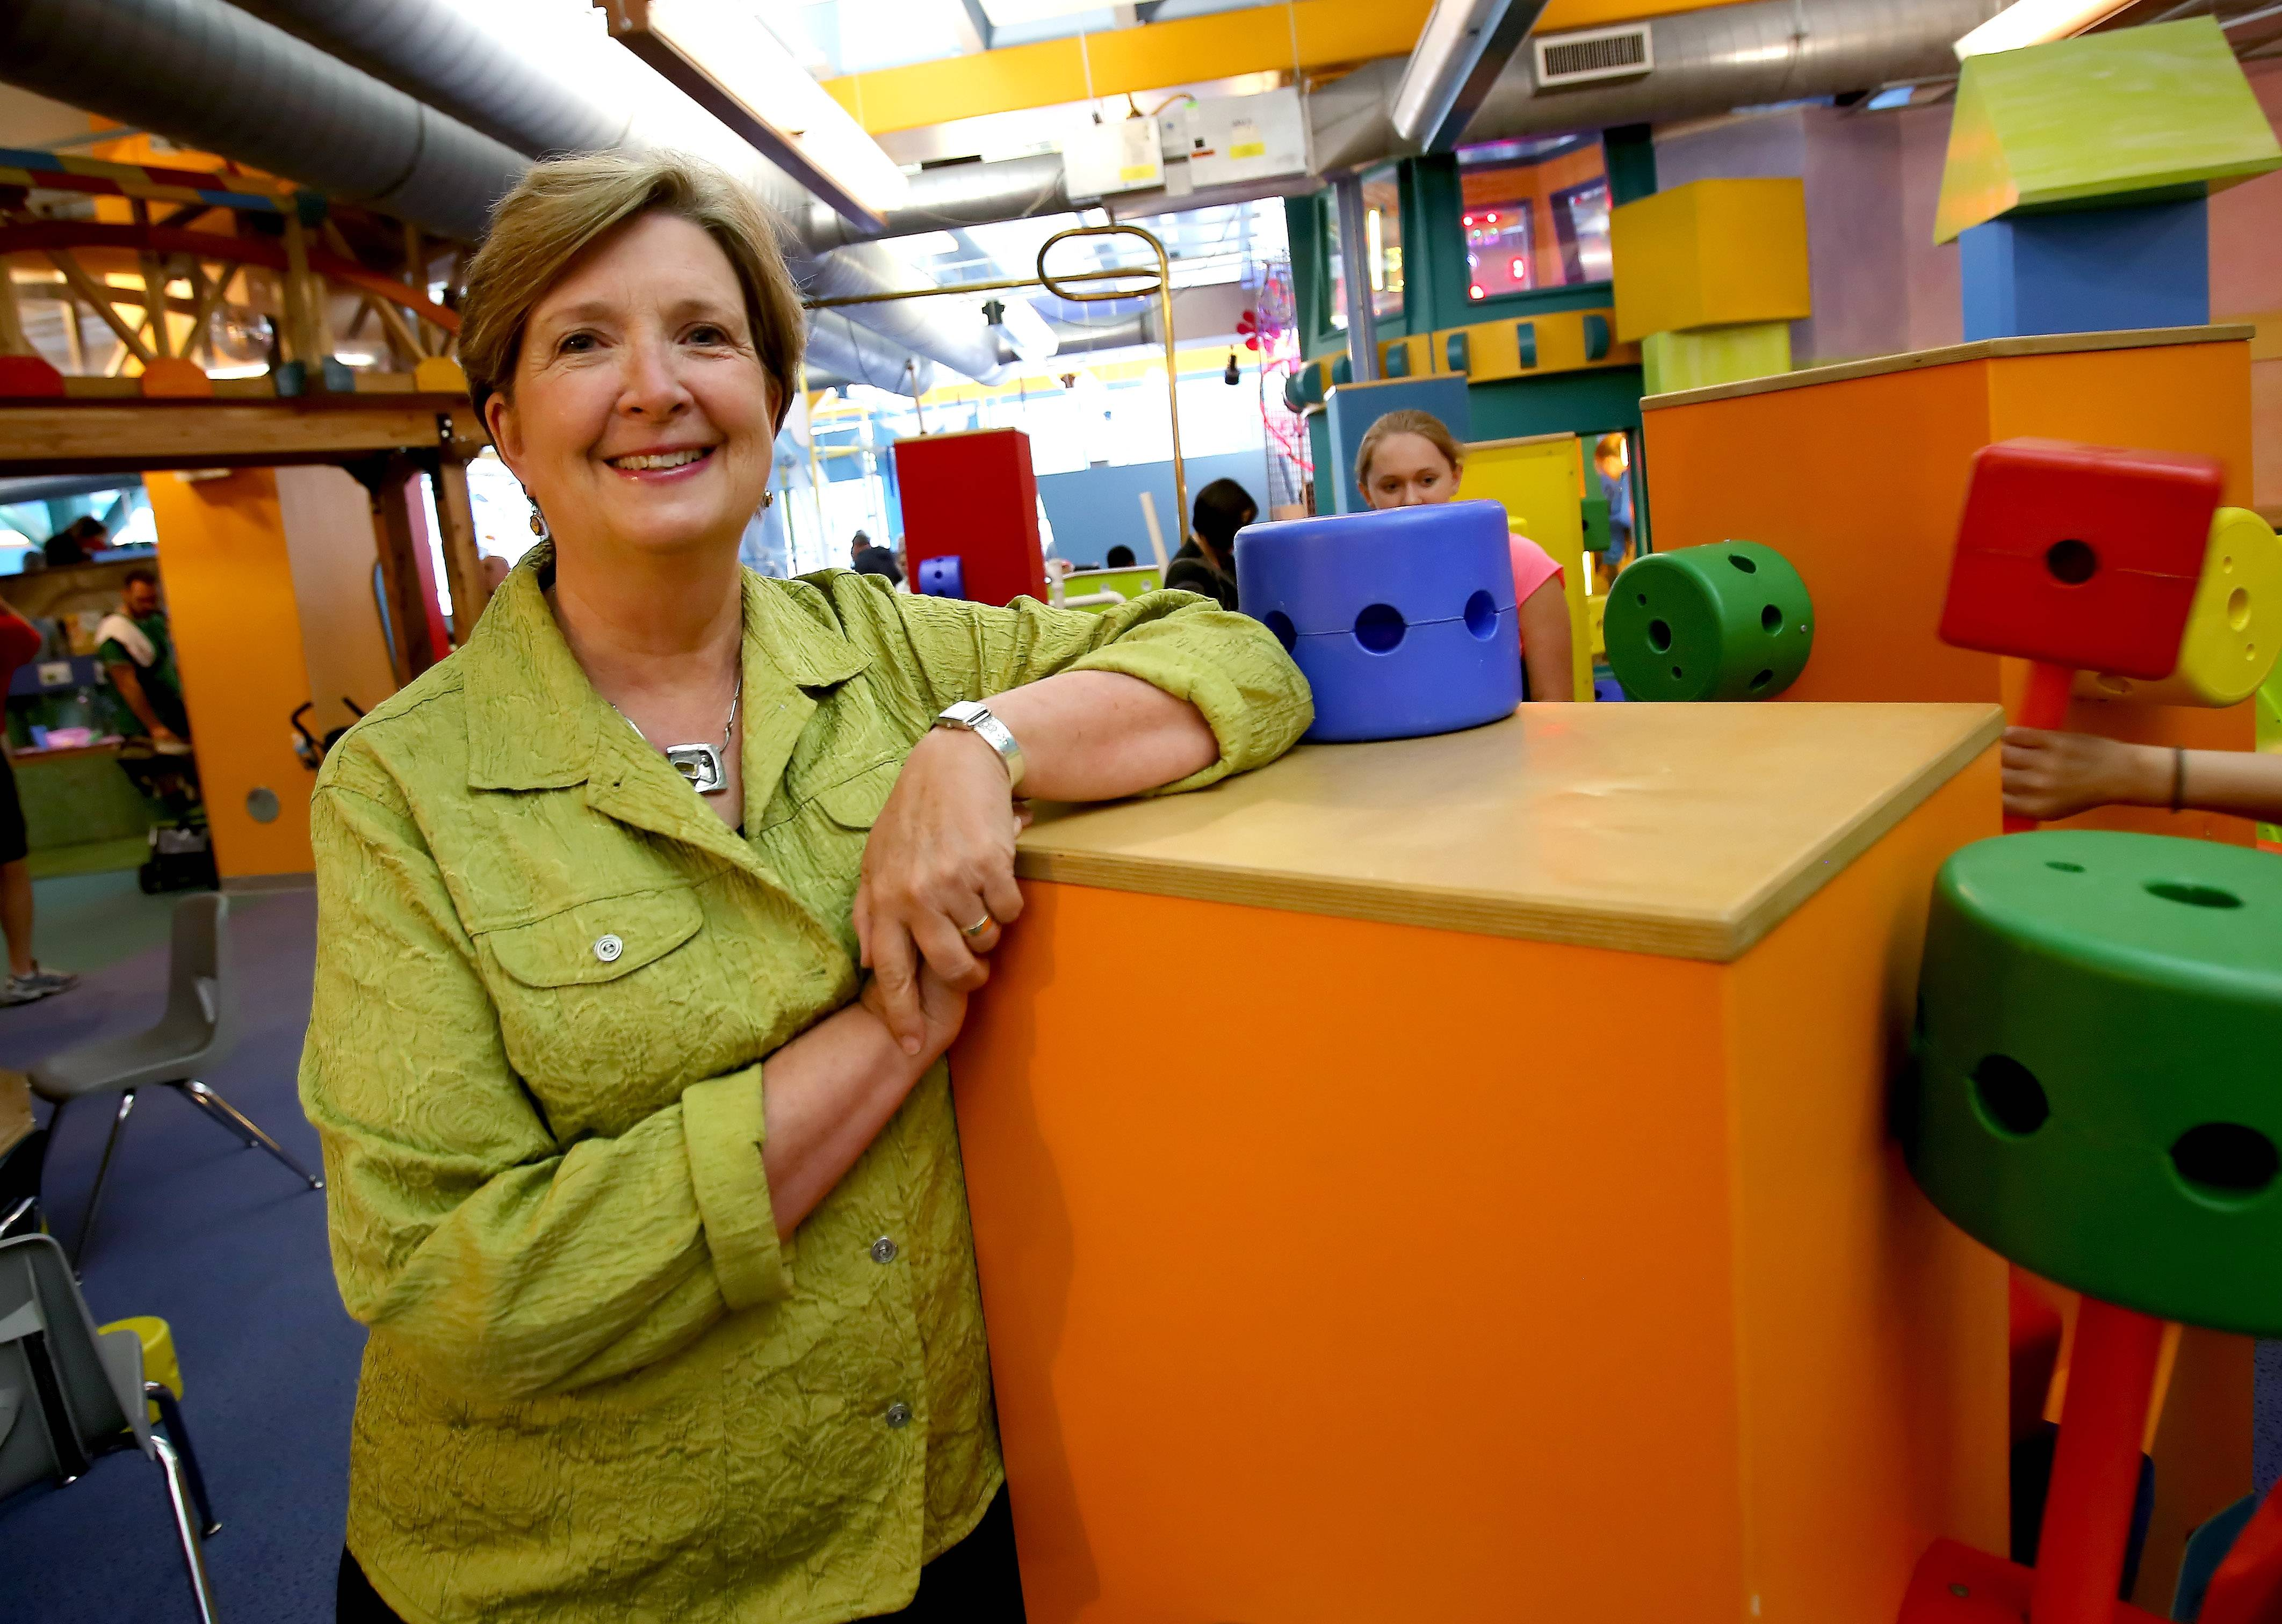 Sarah Orleans says she is working to build new exhibits and partnerships as President and CEO of the DuPage Children's Museum.